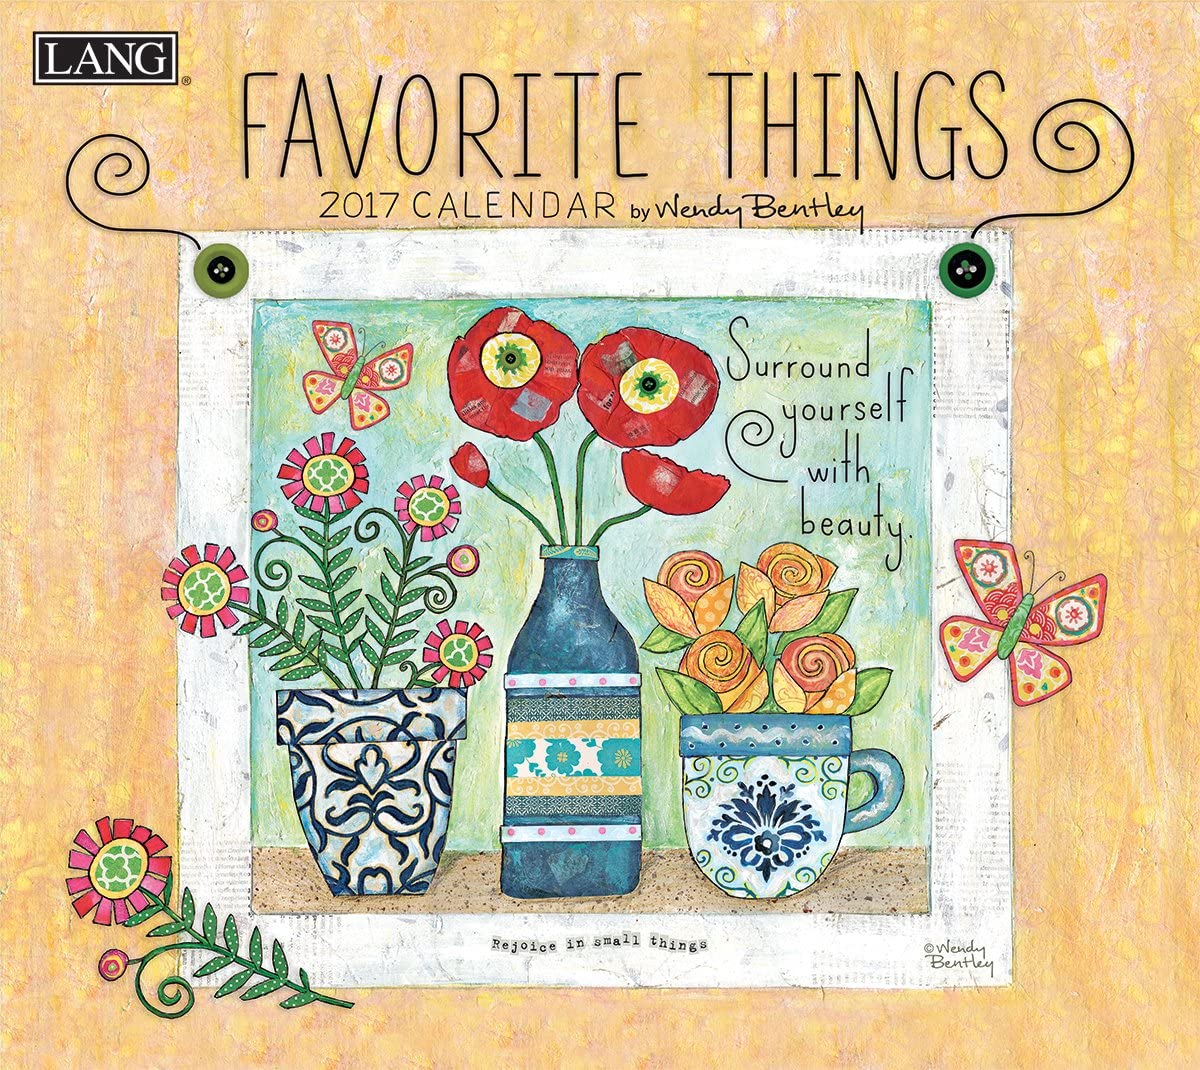 Lang 2017 Favorite Things Wall Calendar, 13.375 x 24 inches (17991001857)